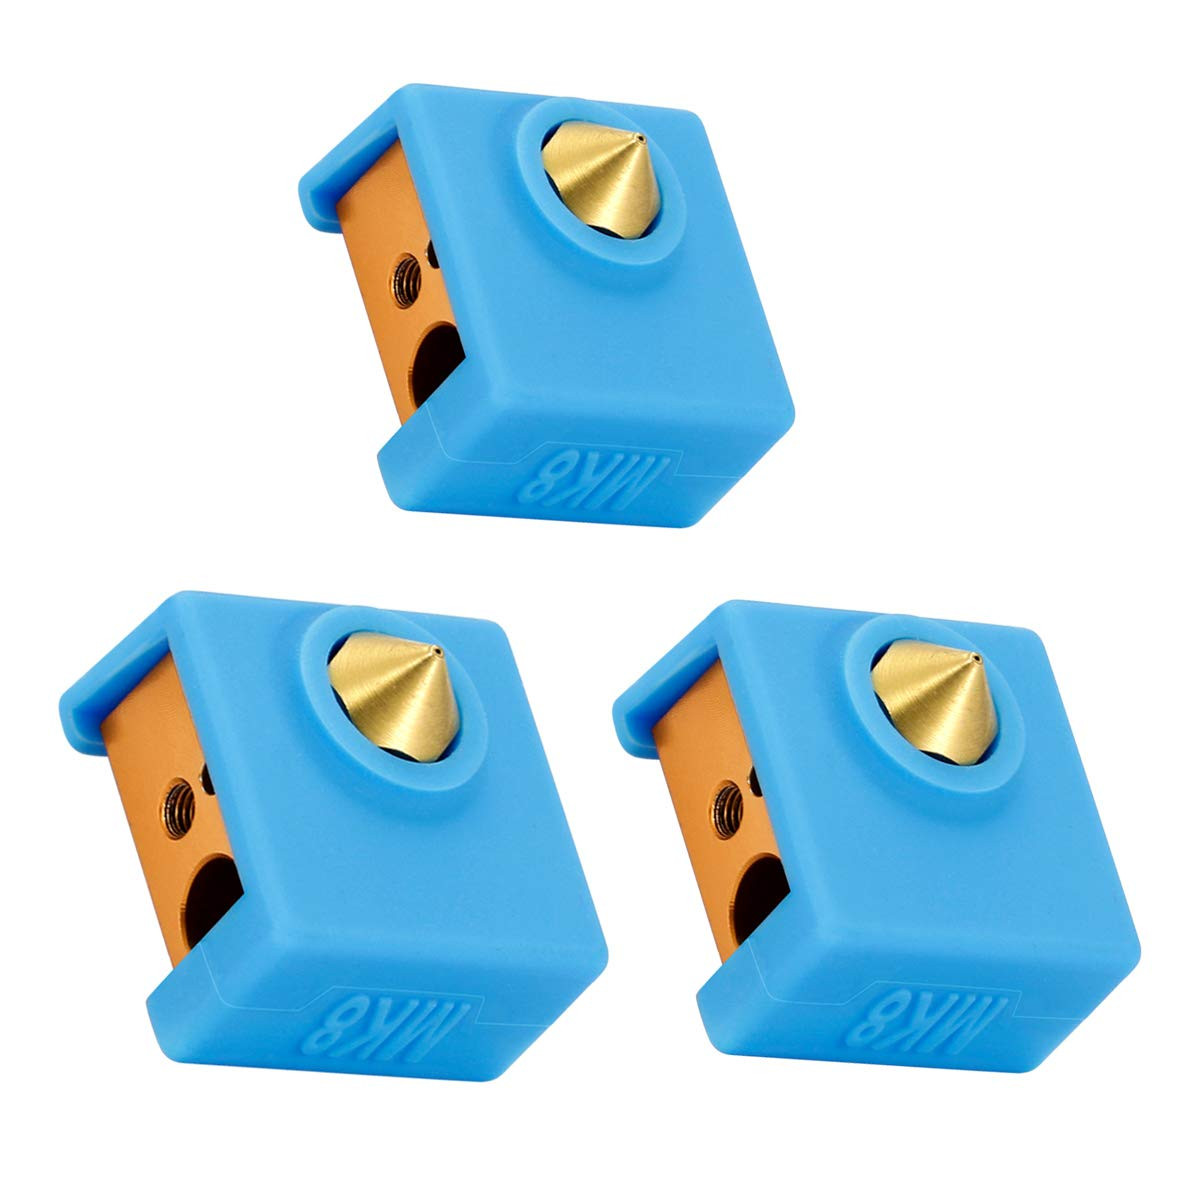 Ewigkeit MK8 Silicone Sock Heater Block Cover MK7/8/9 Hotend for Creality CR-10,10S,Ender 3,Anet A8 3D Printer(not Include Heater Block))